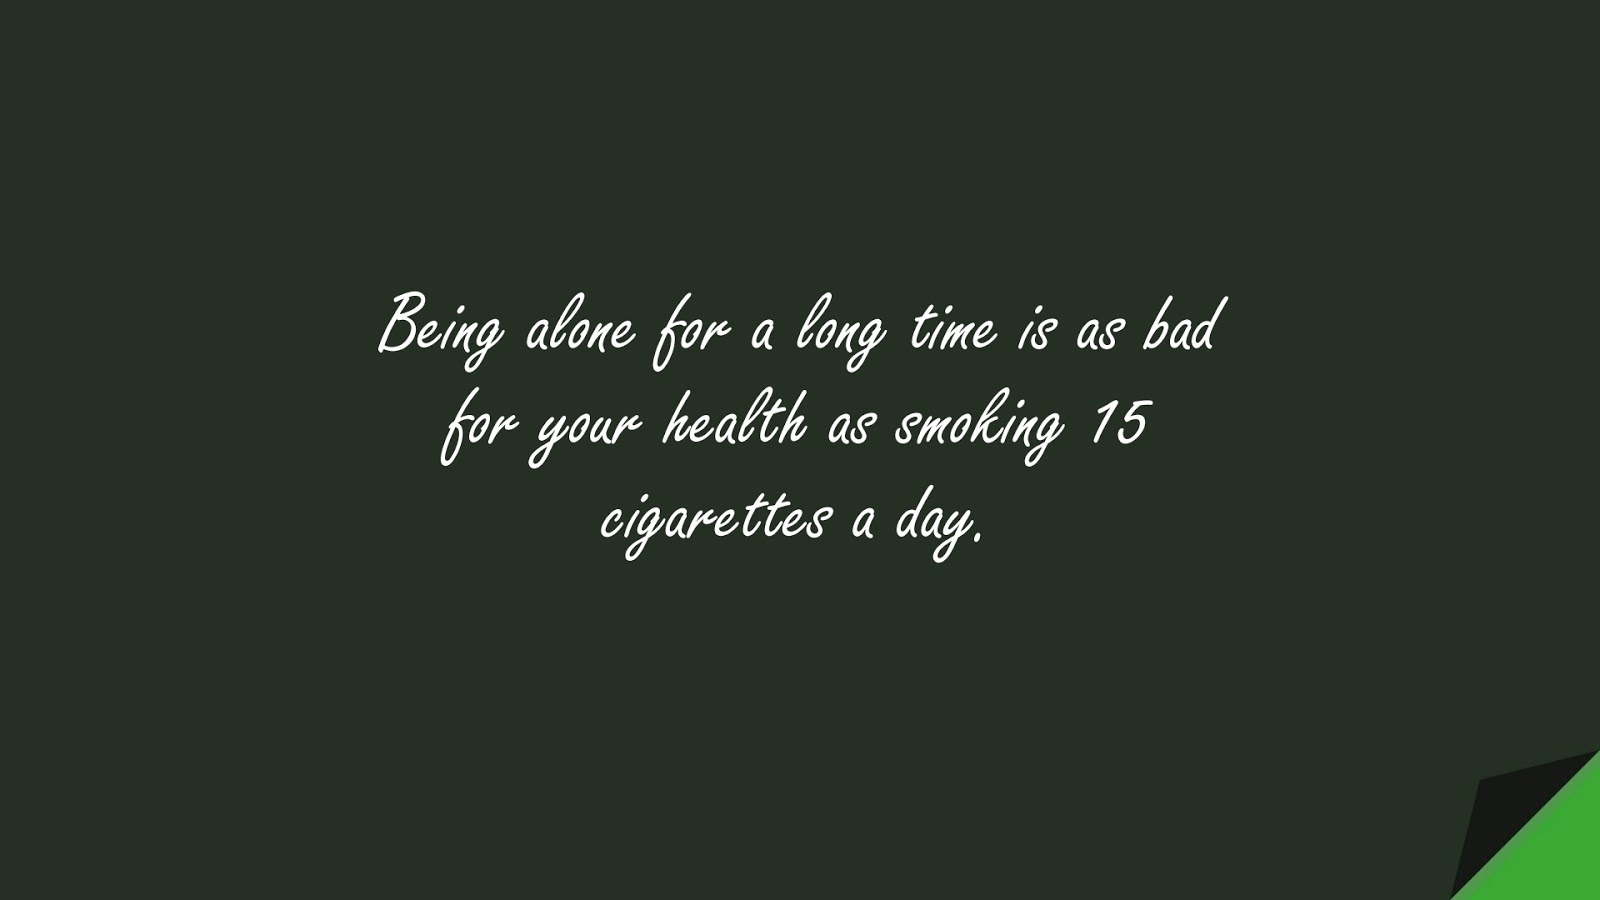 Being alone for a long time is as bad for your health as smoking 15 cigarettes a day.FALSE